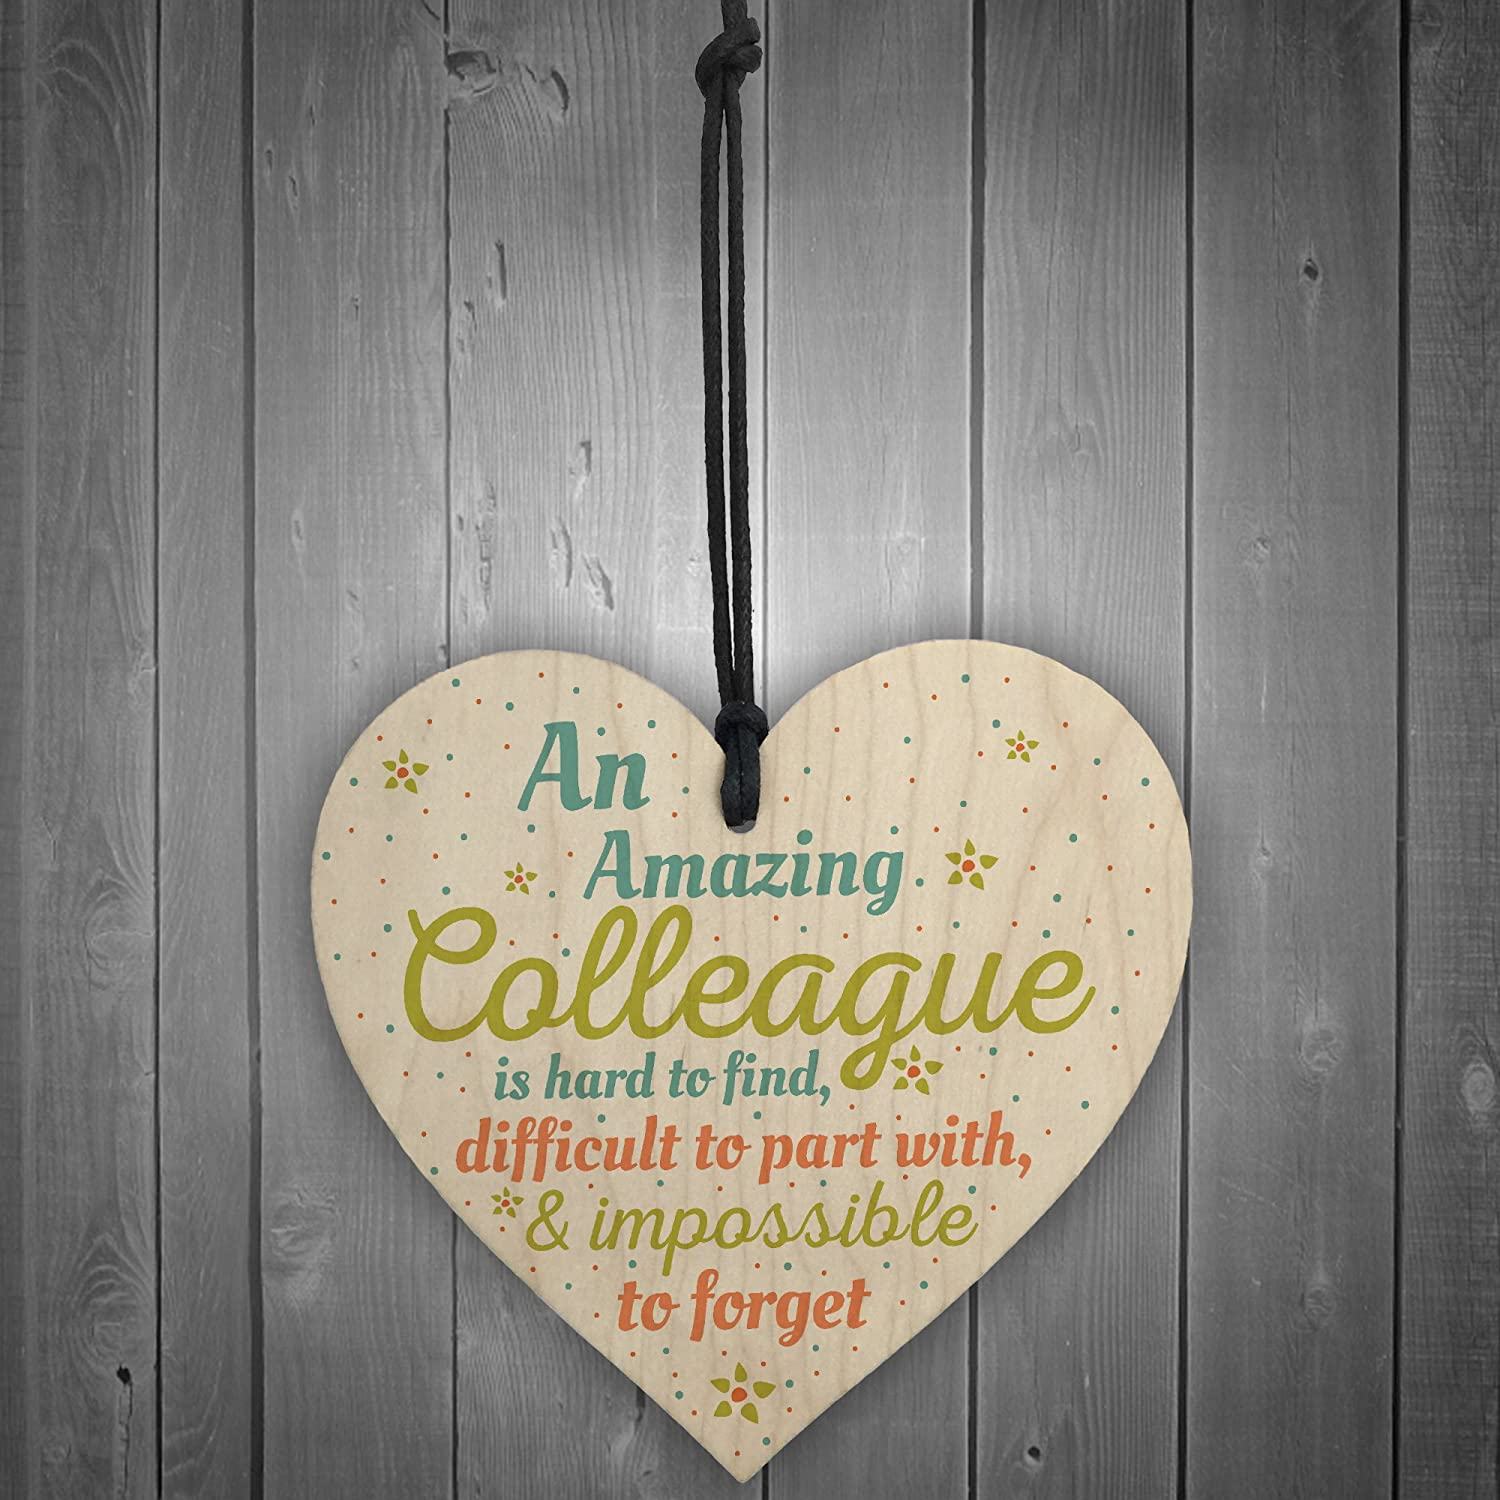 ukgiftstoreonline Special And Few Colleagues Wooden Hanging Heart Plaque Sign Friend Friendship Thank You Office Work Gift